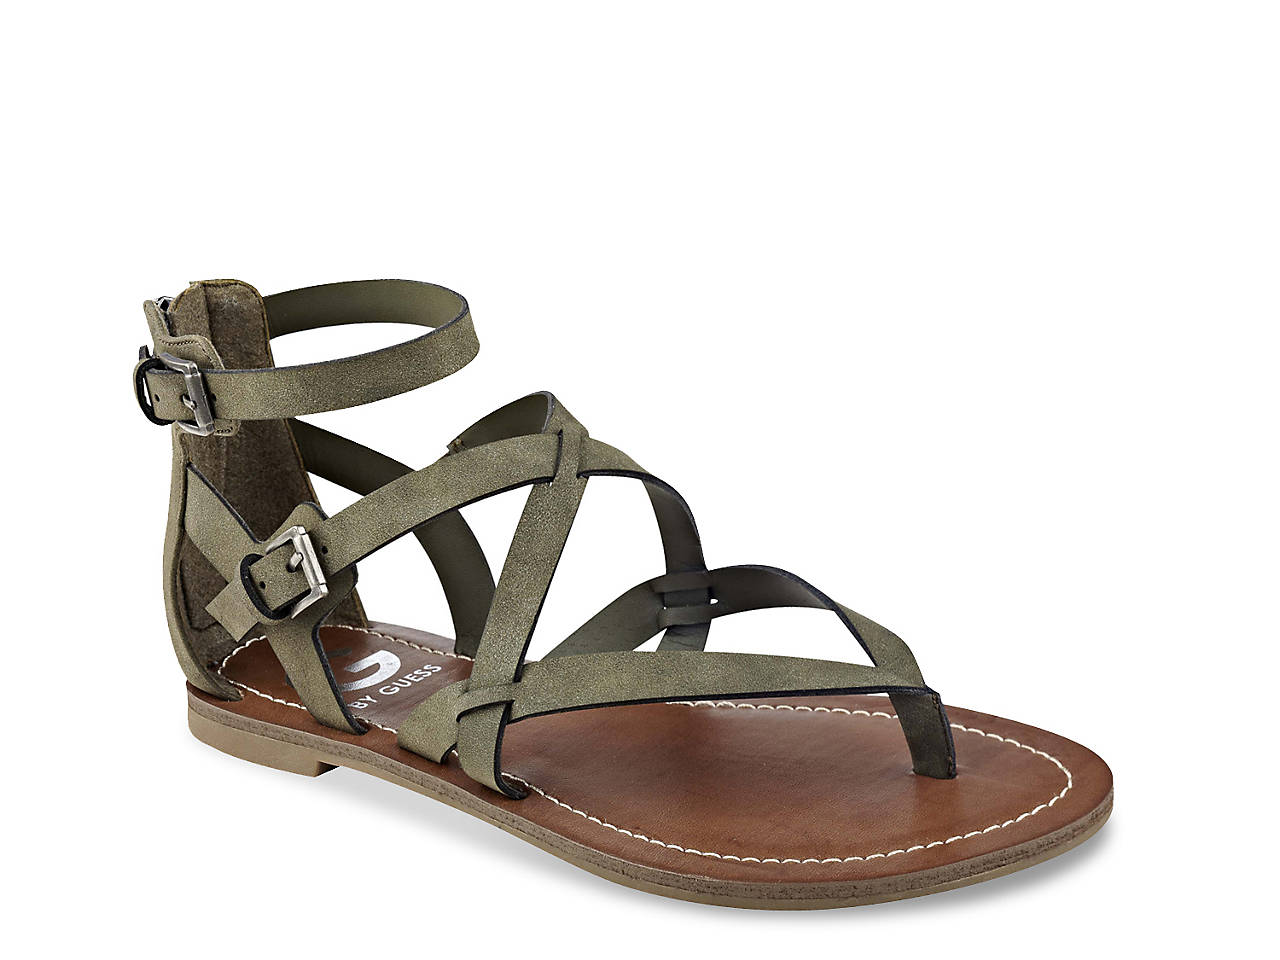 456f470d0 G by GUESS Howy Gladiator Sandal Women s Shoes